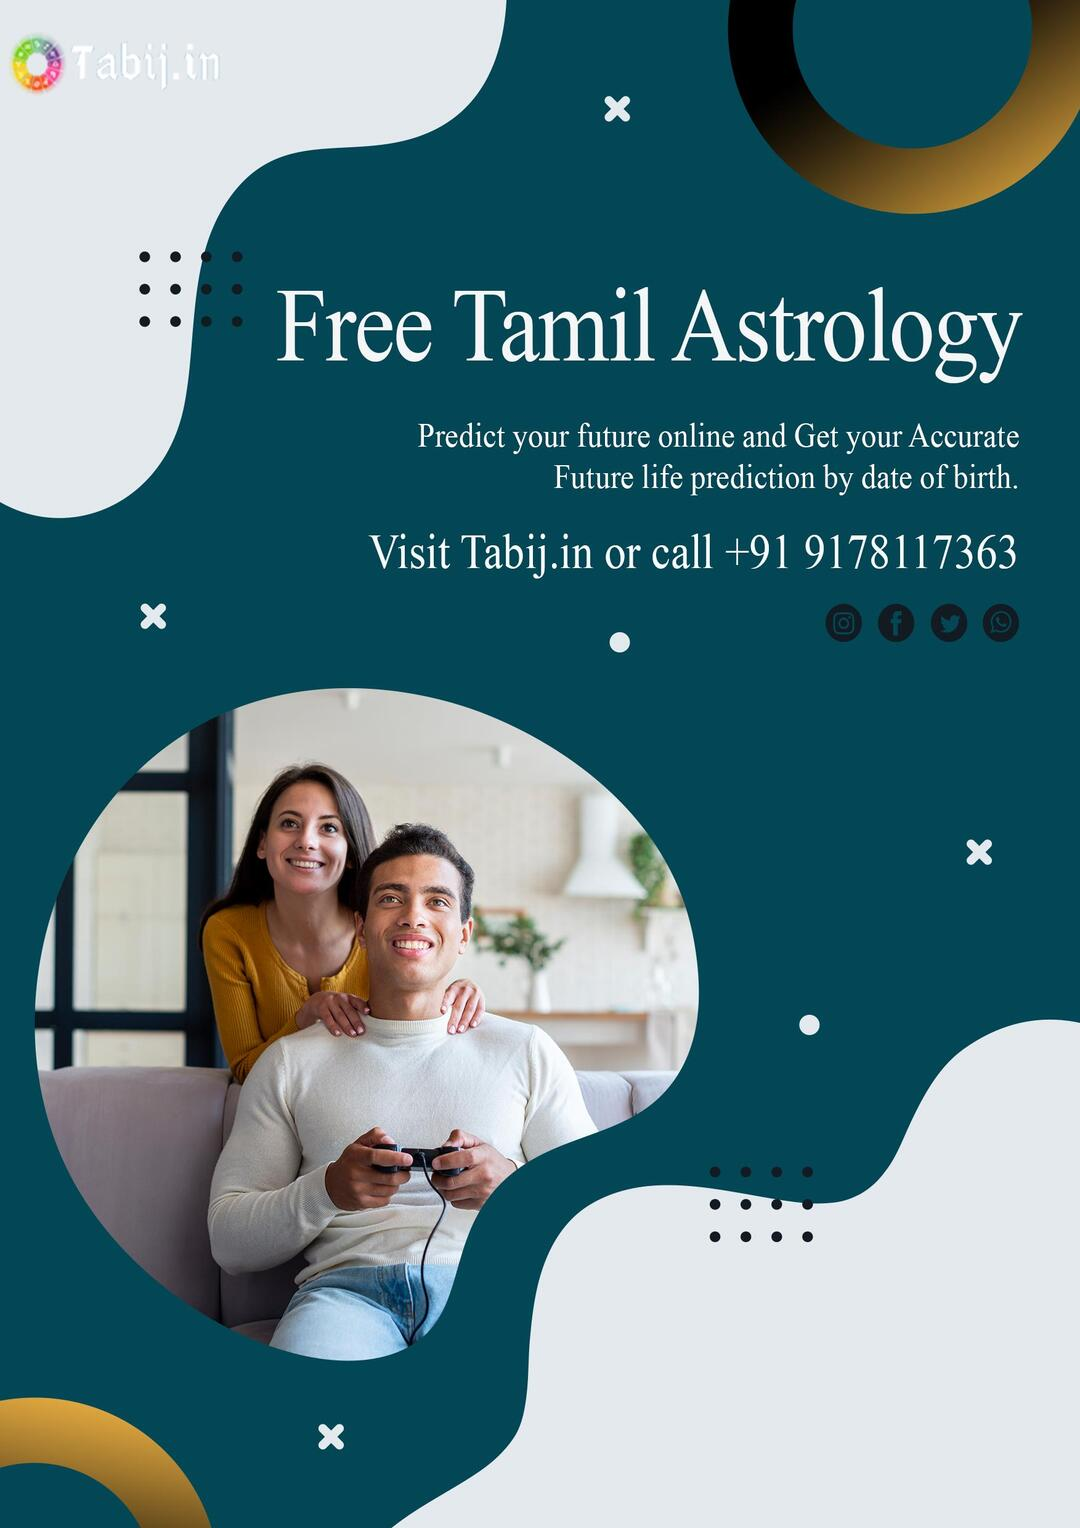 Detailed Life Predictions free: Get Tamil astrology based